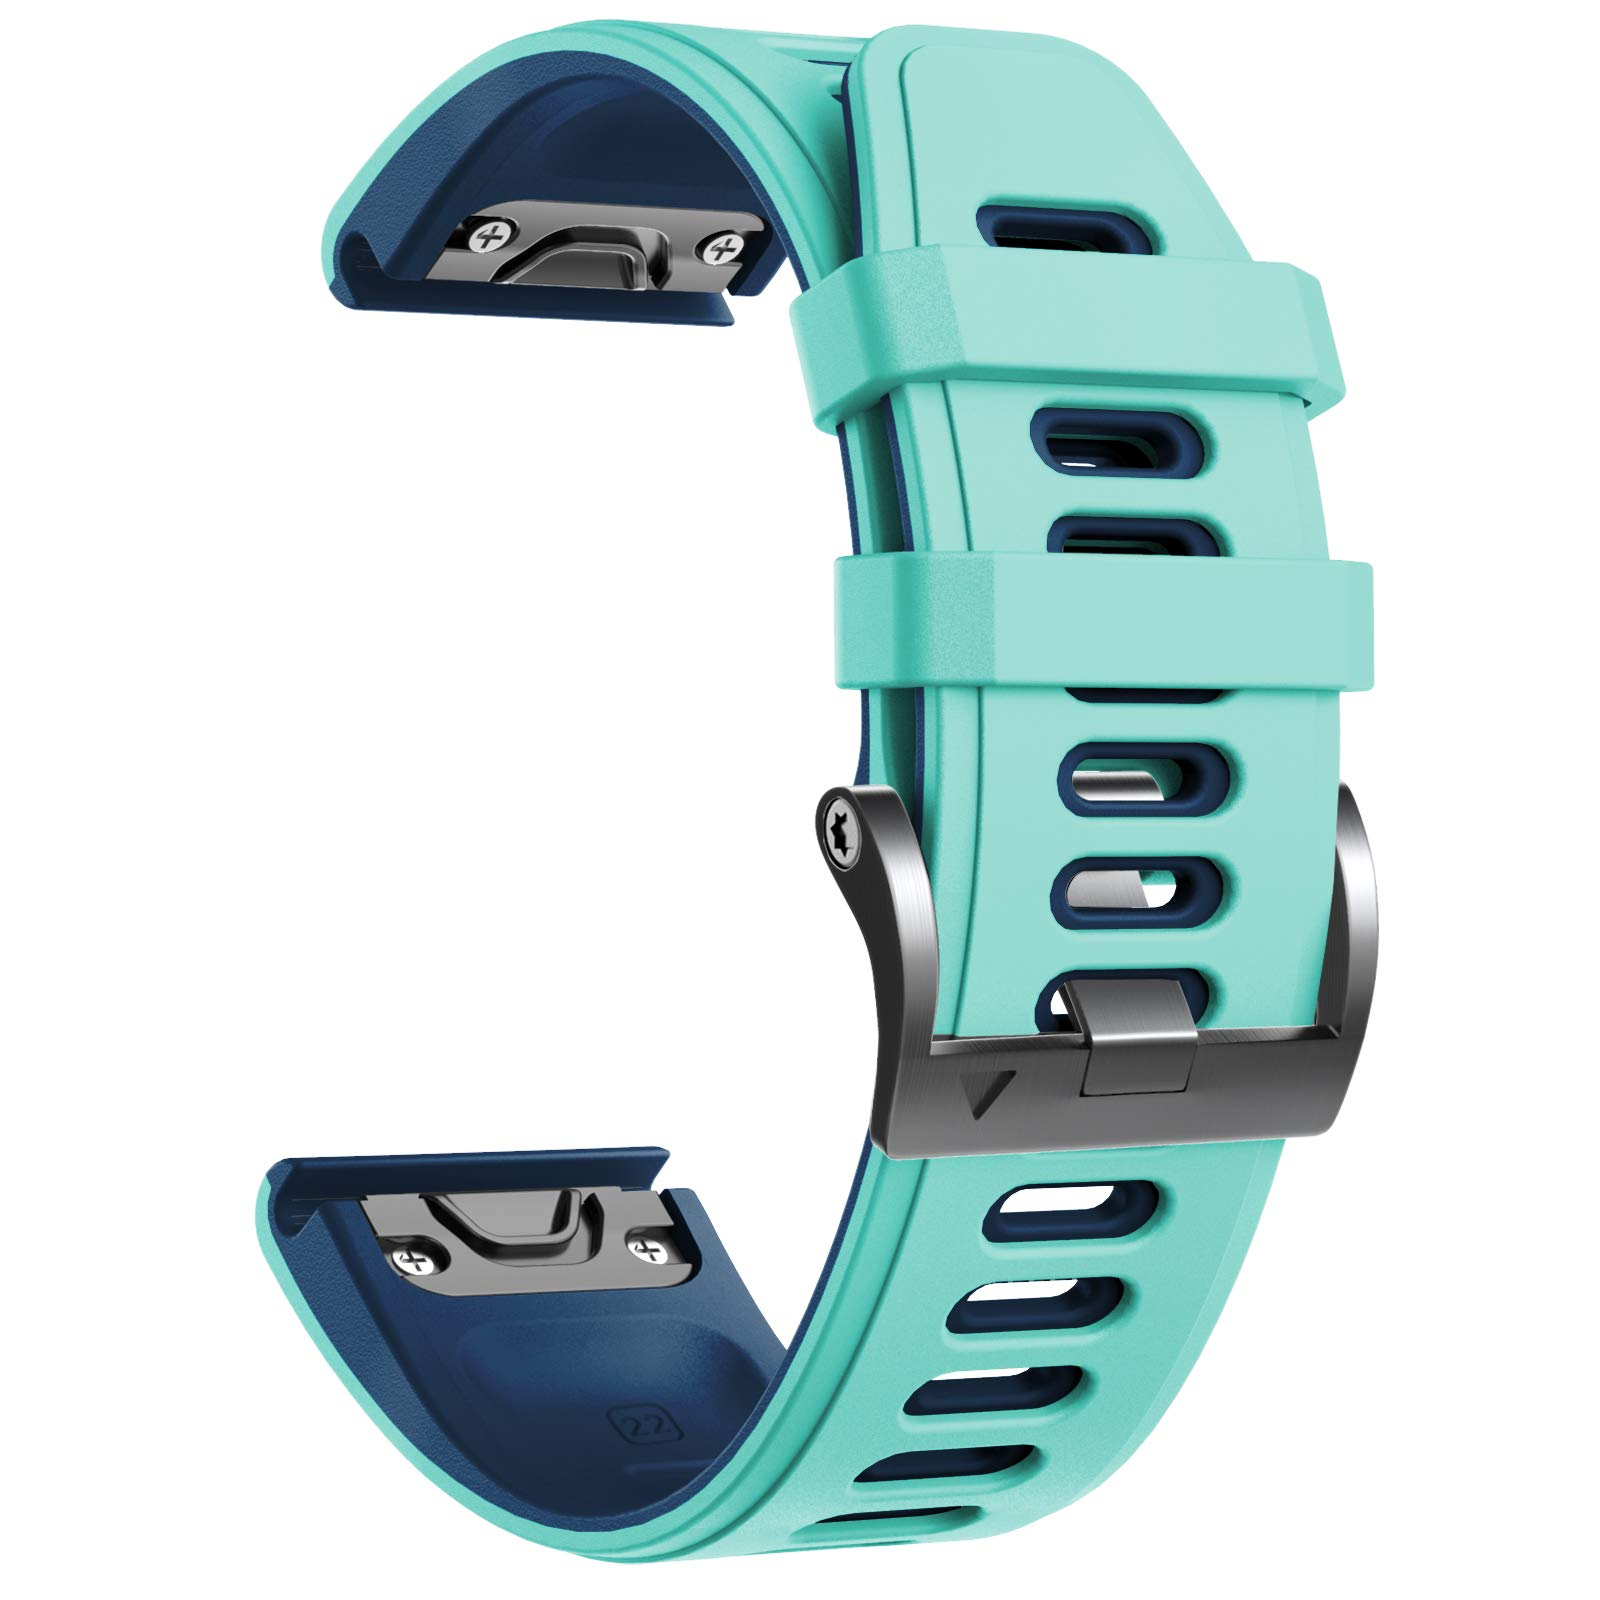 Notocity Compatible with Fenix 6 pro Watch Band for Fenix 6/Fenix 6 Pro/Fenix 5/Fenix 5 Plus/Forerunner 935/Forerunner 945/Approach S60/Quatix 5 (Teal)